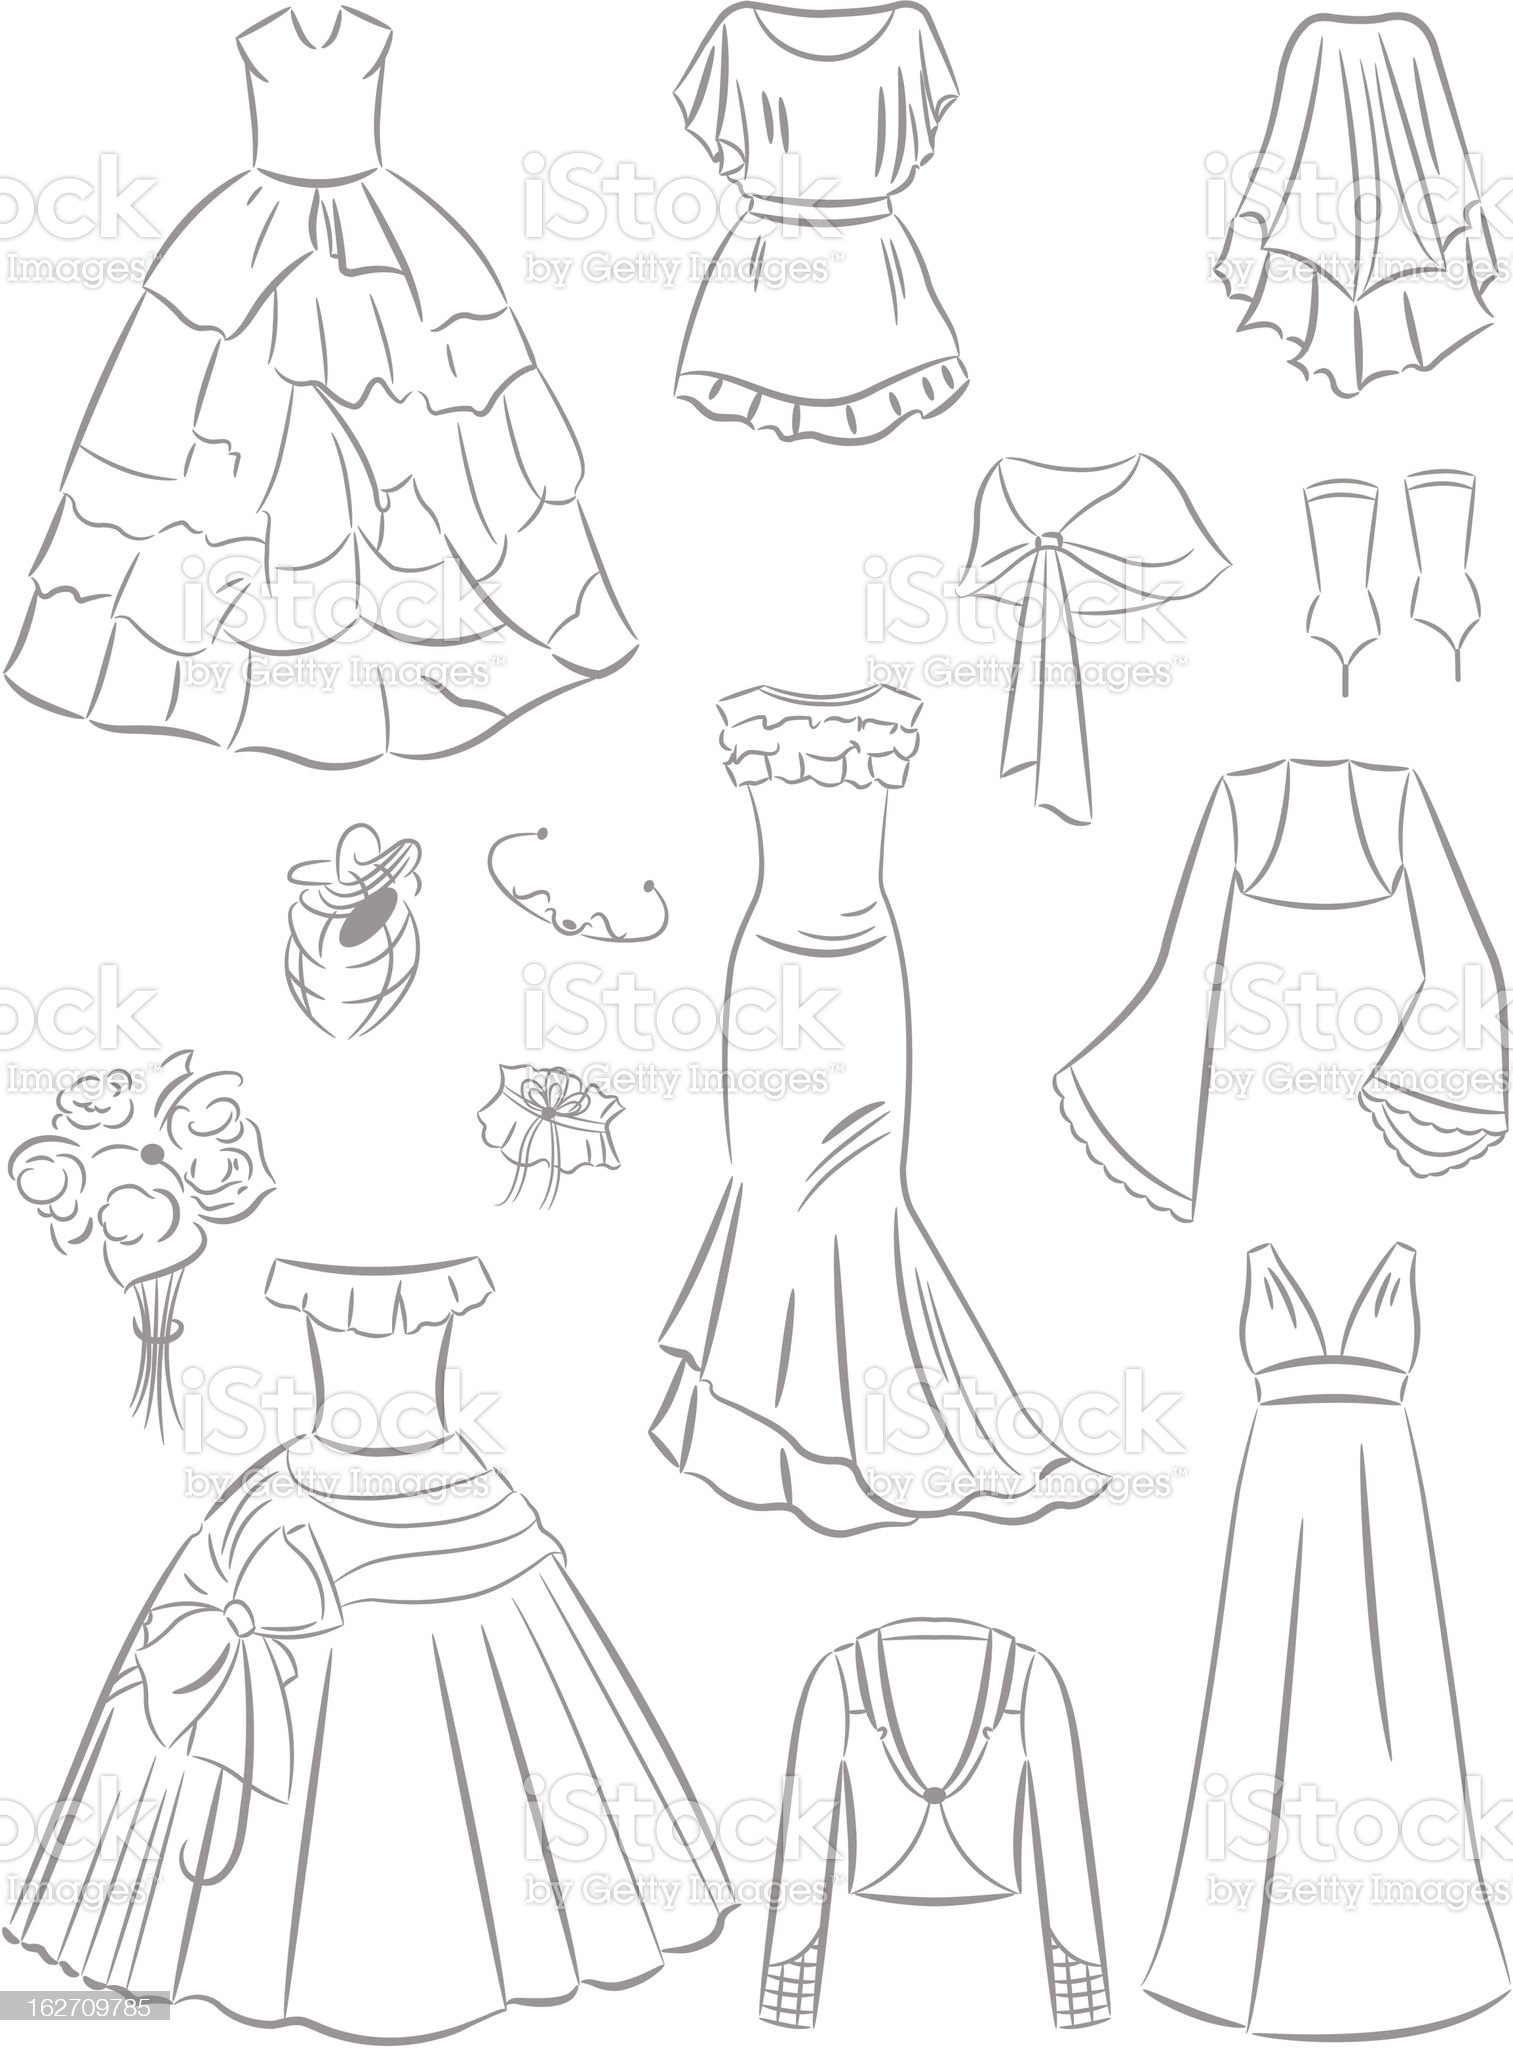 Wedding dresses and accessories royalty-free stock vector art